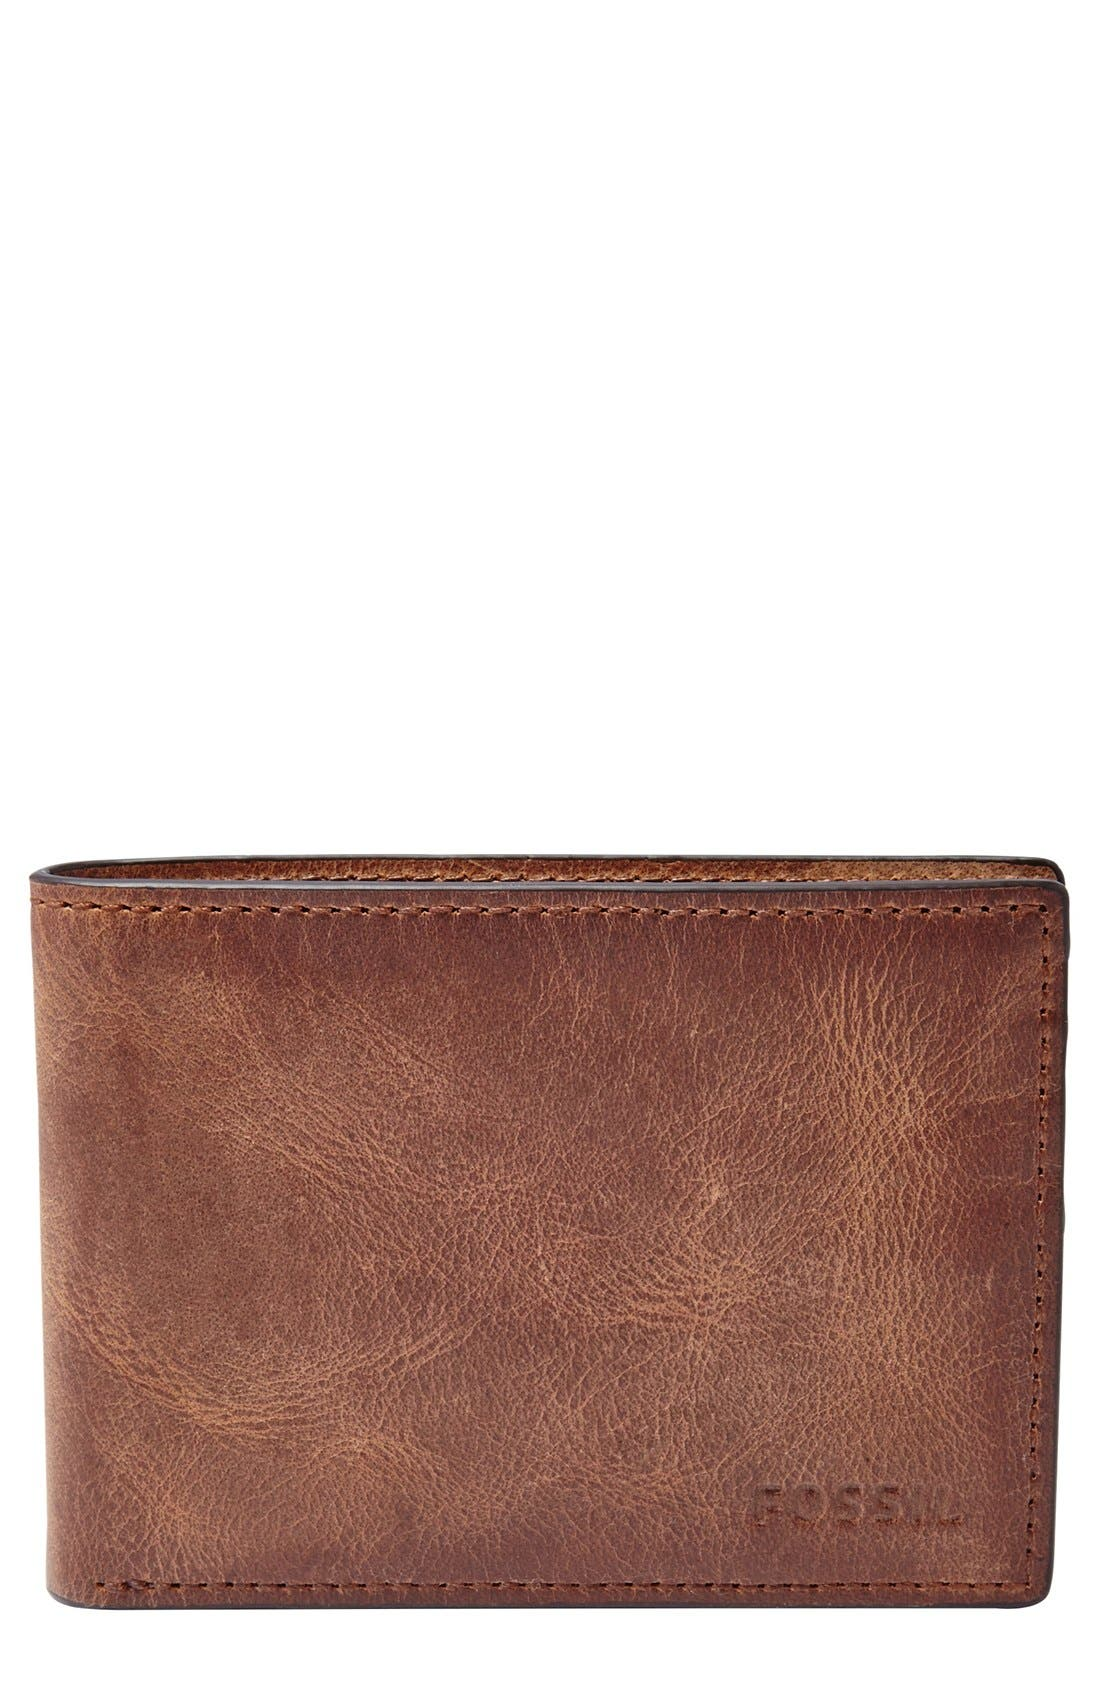 FOSSIL, 'Derrick' Leather Front Pocket Bifold Wallet, Main thumbnail 1, color, BROWN